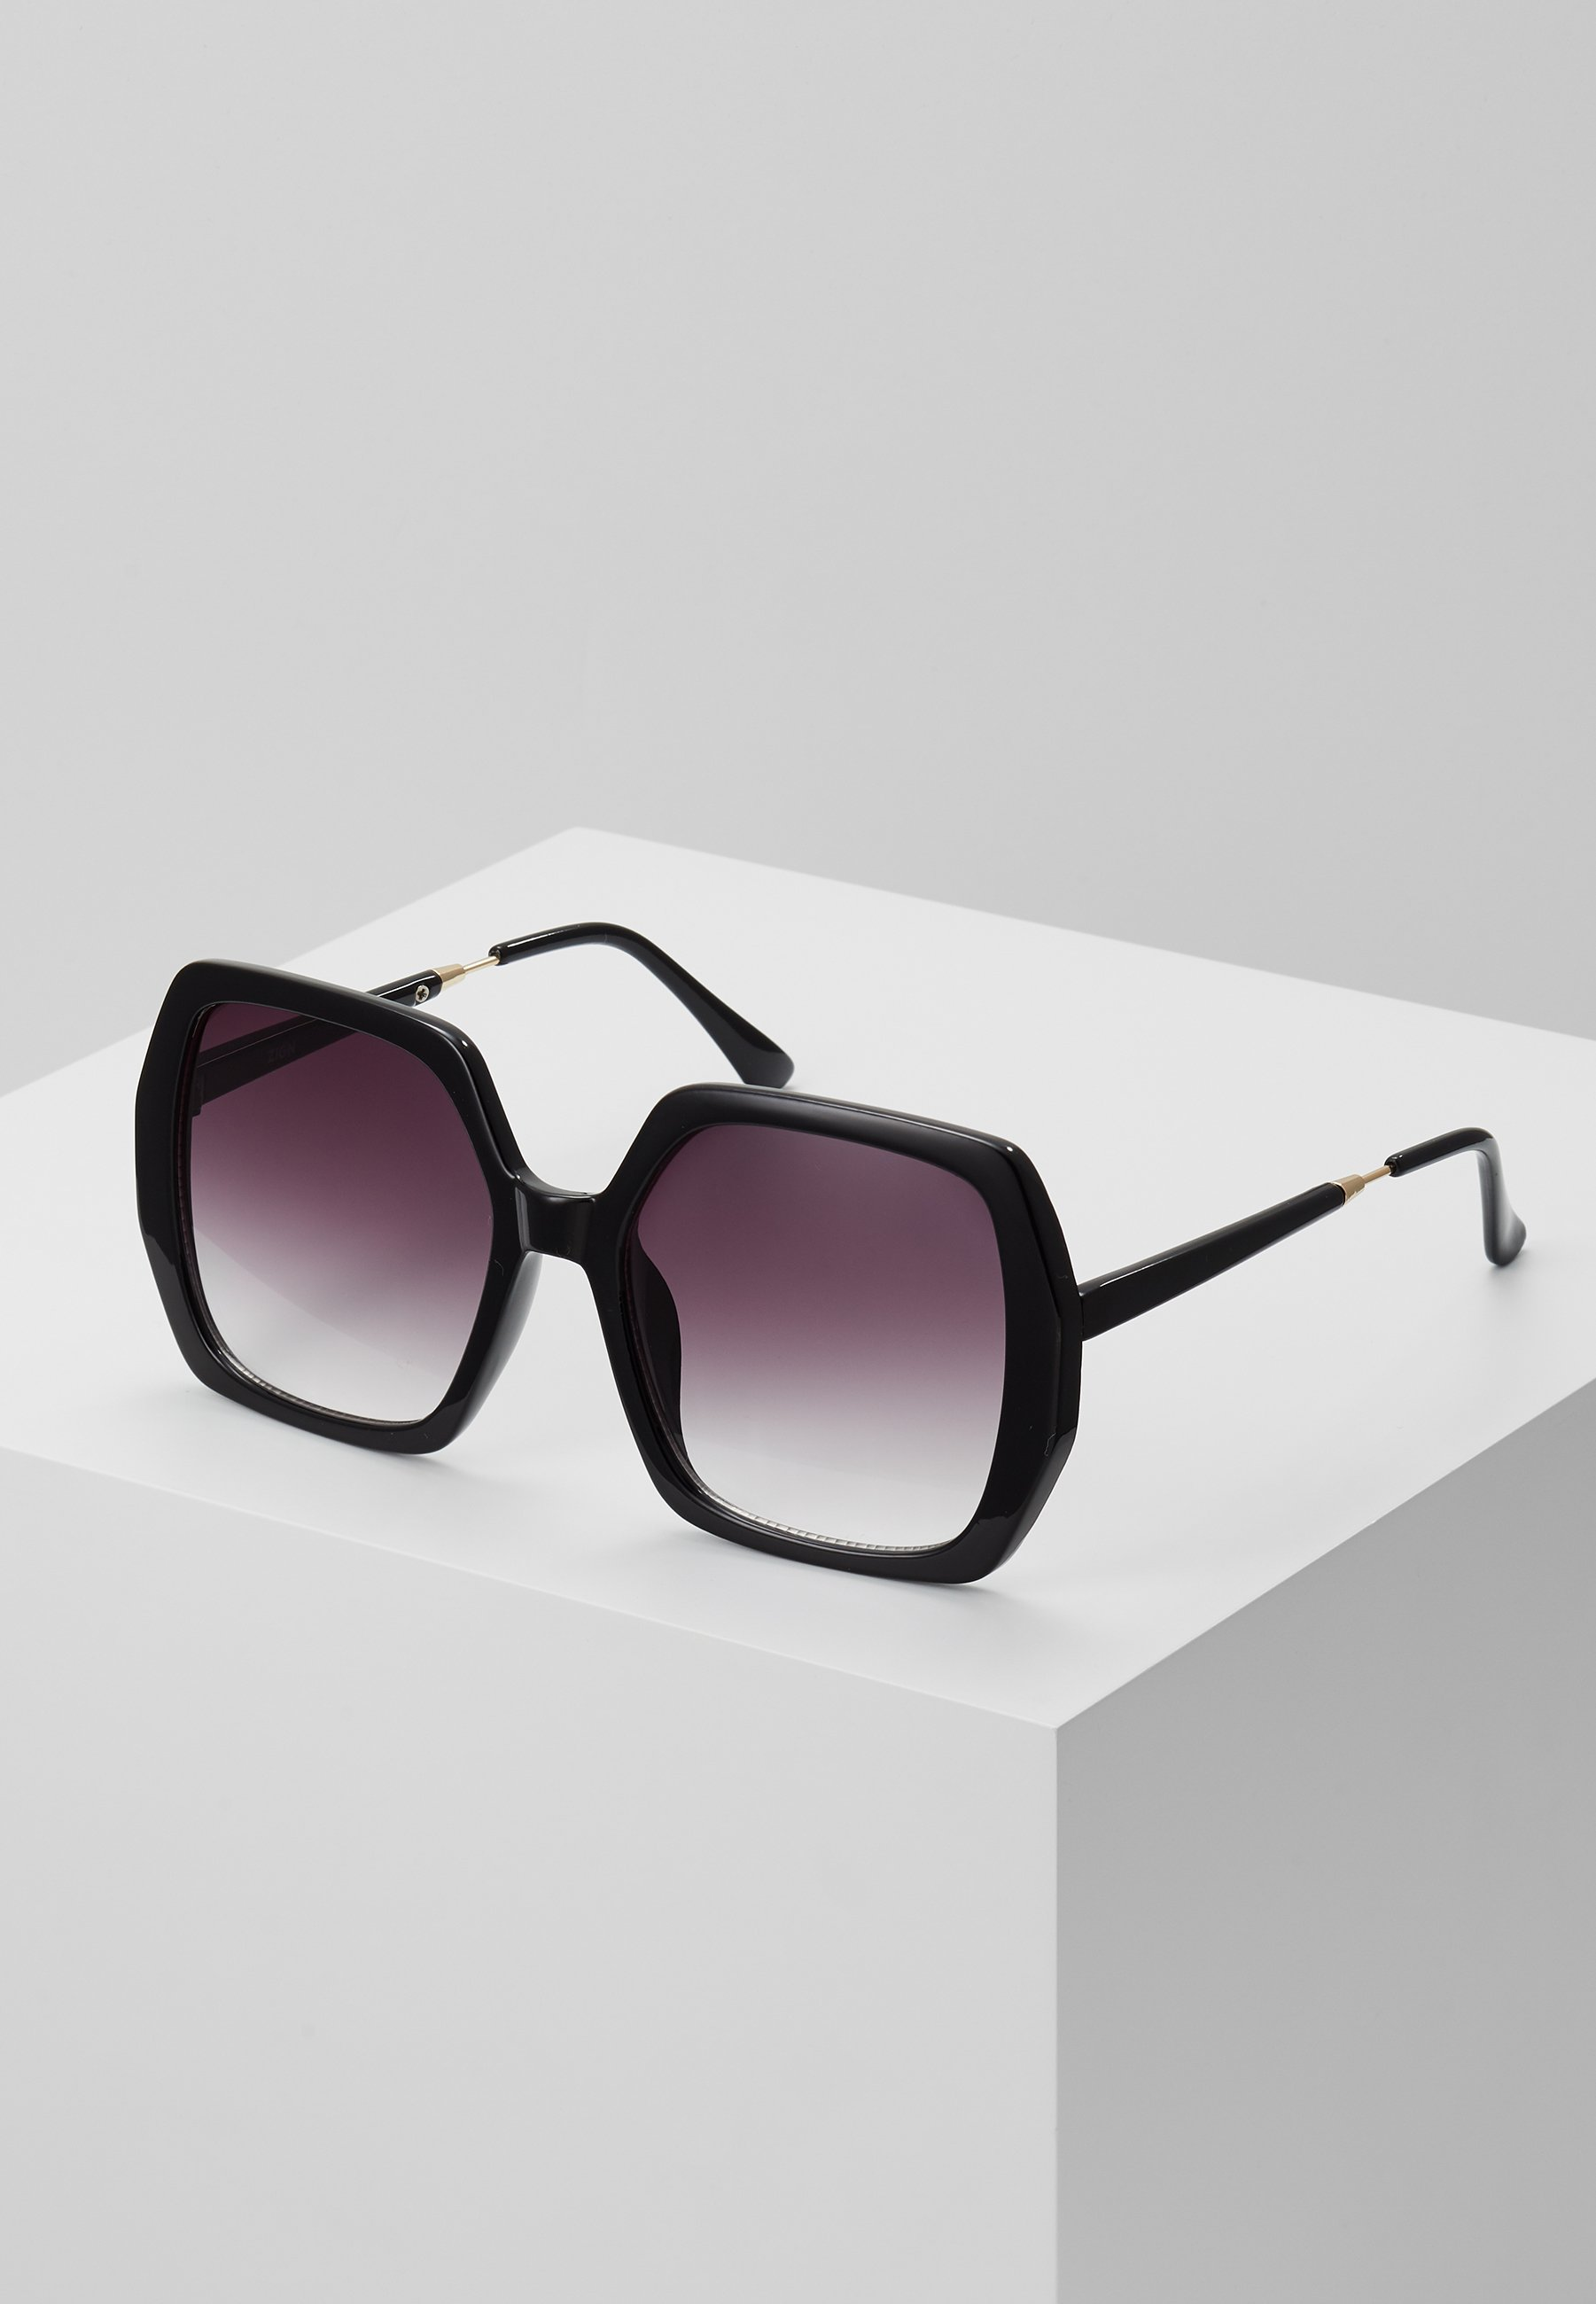 Zign Sunglasses - black